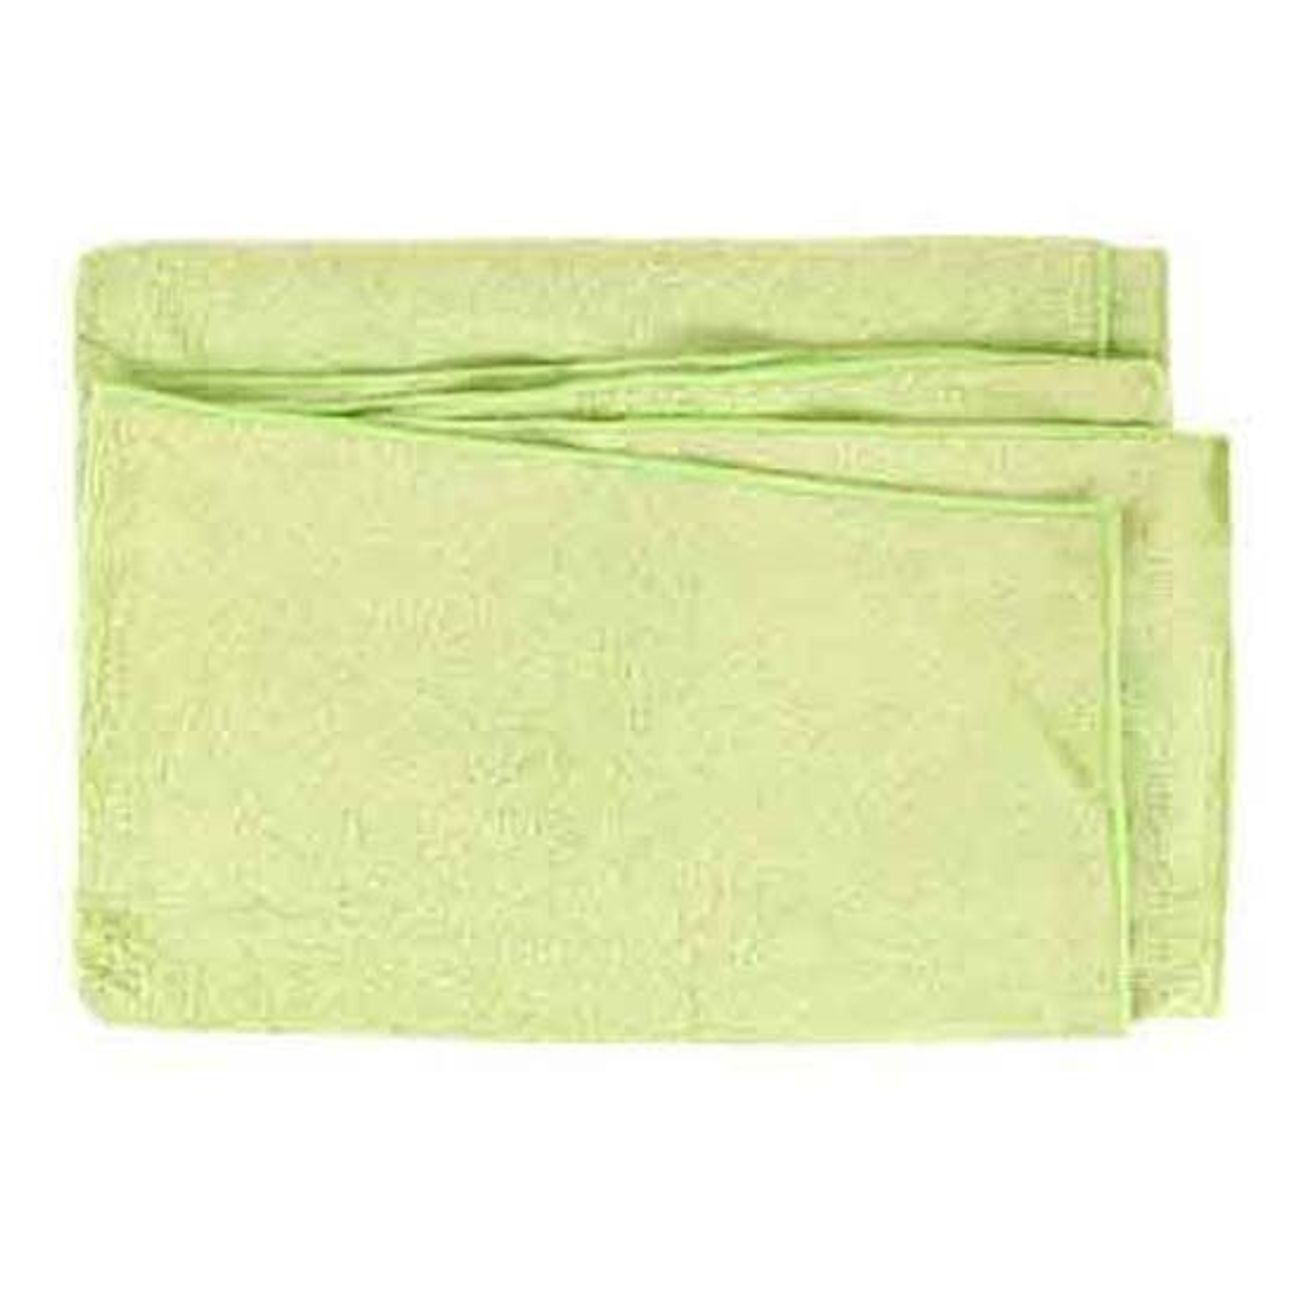 Adulte Bamboo Wickerman Sports Montagne Trespass Towel f7Y6bgy